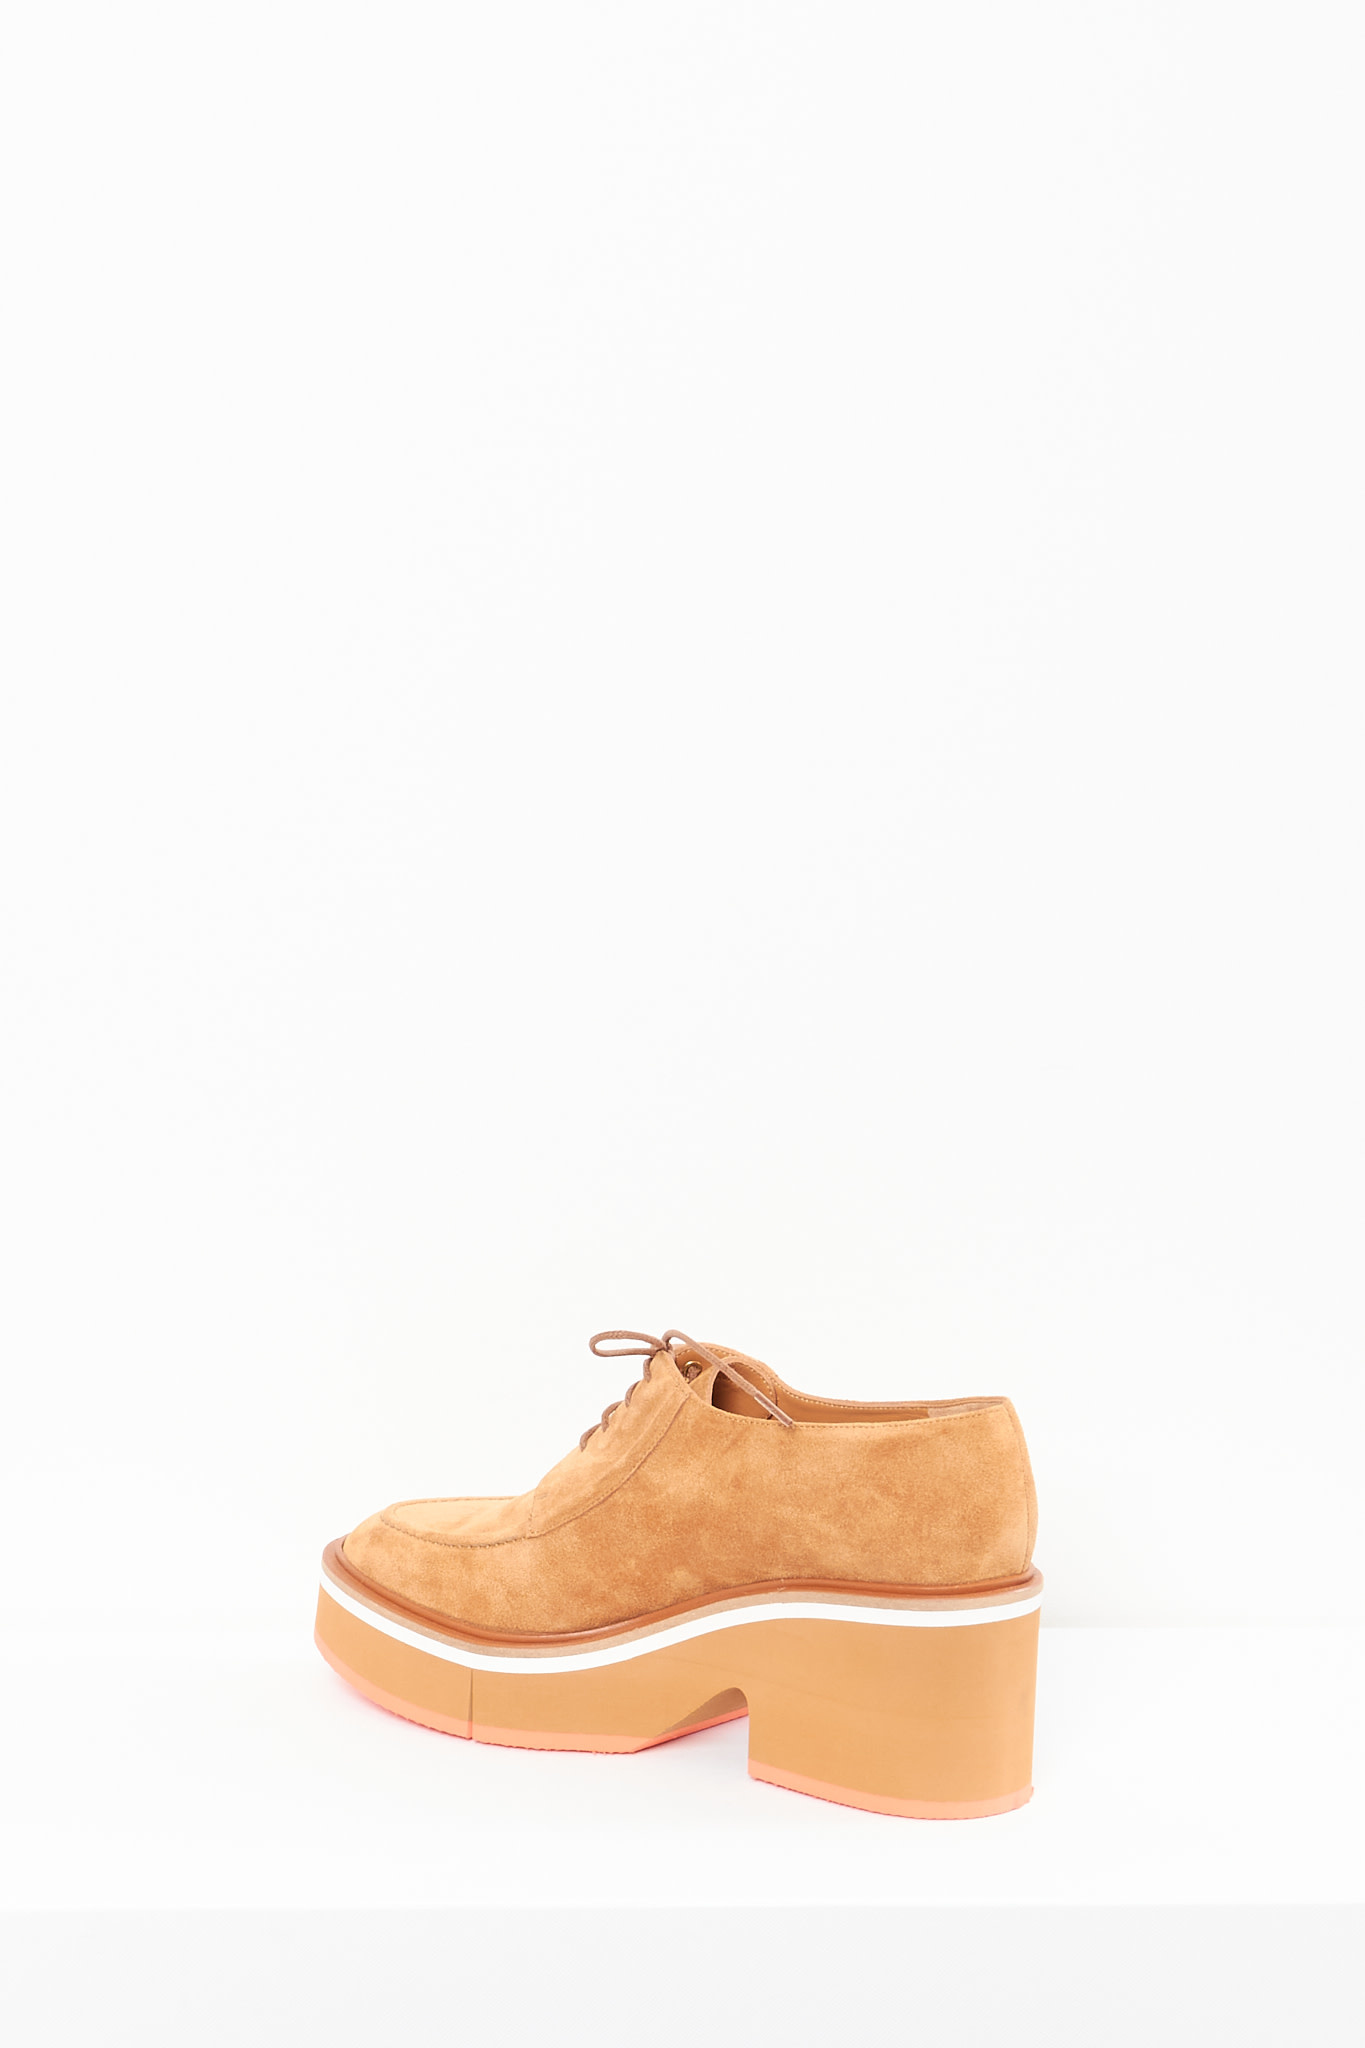 Clergerie - Anja suede leather shoe's